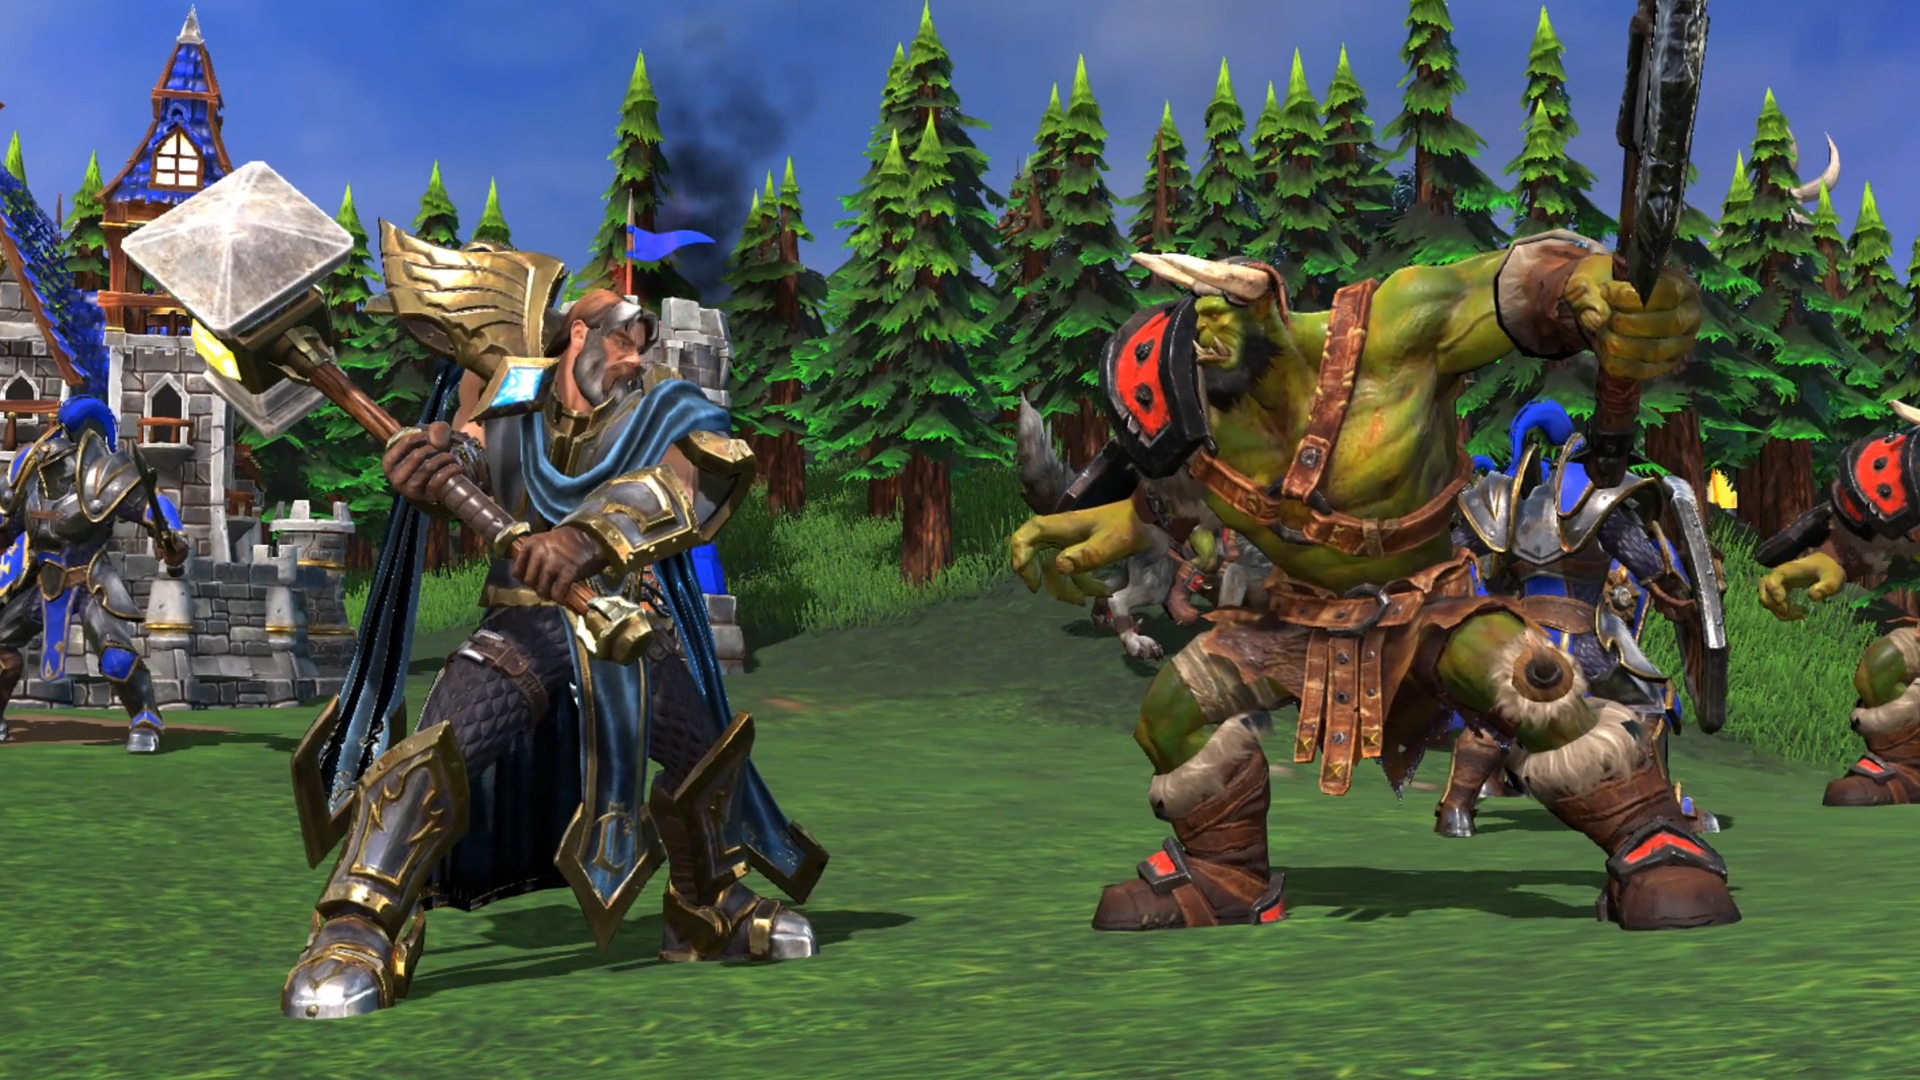 Pre Orders Of Warcraft 3 Reforged Should Get The Original On December 1 Pcgamesn